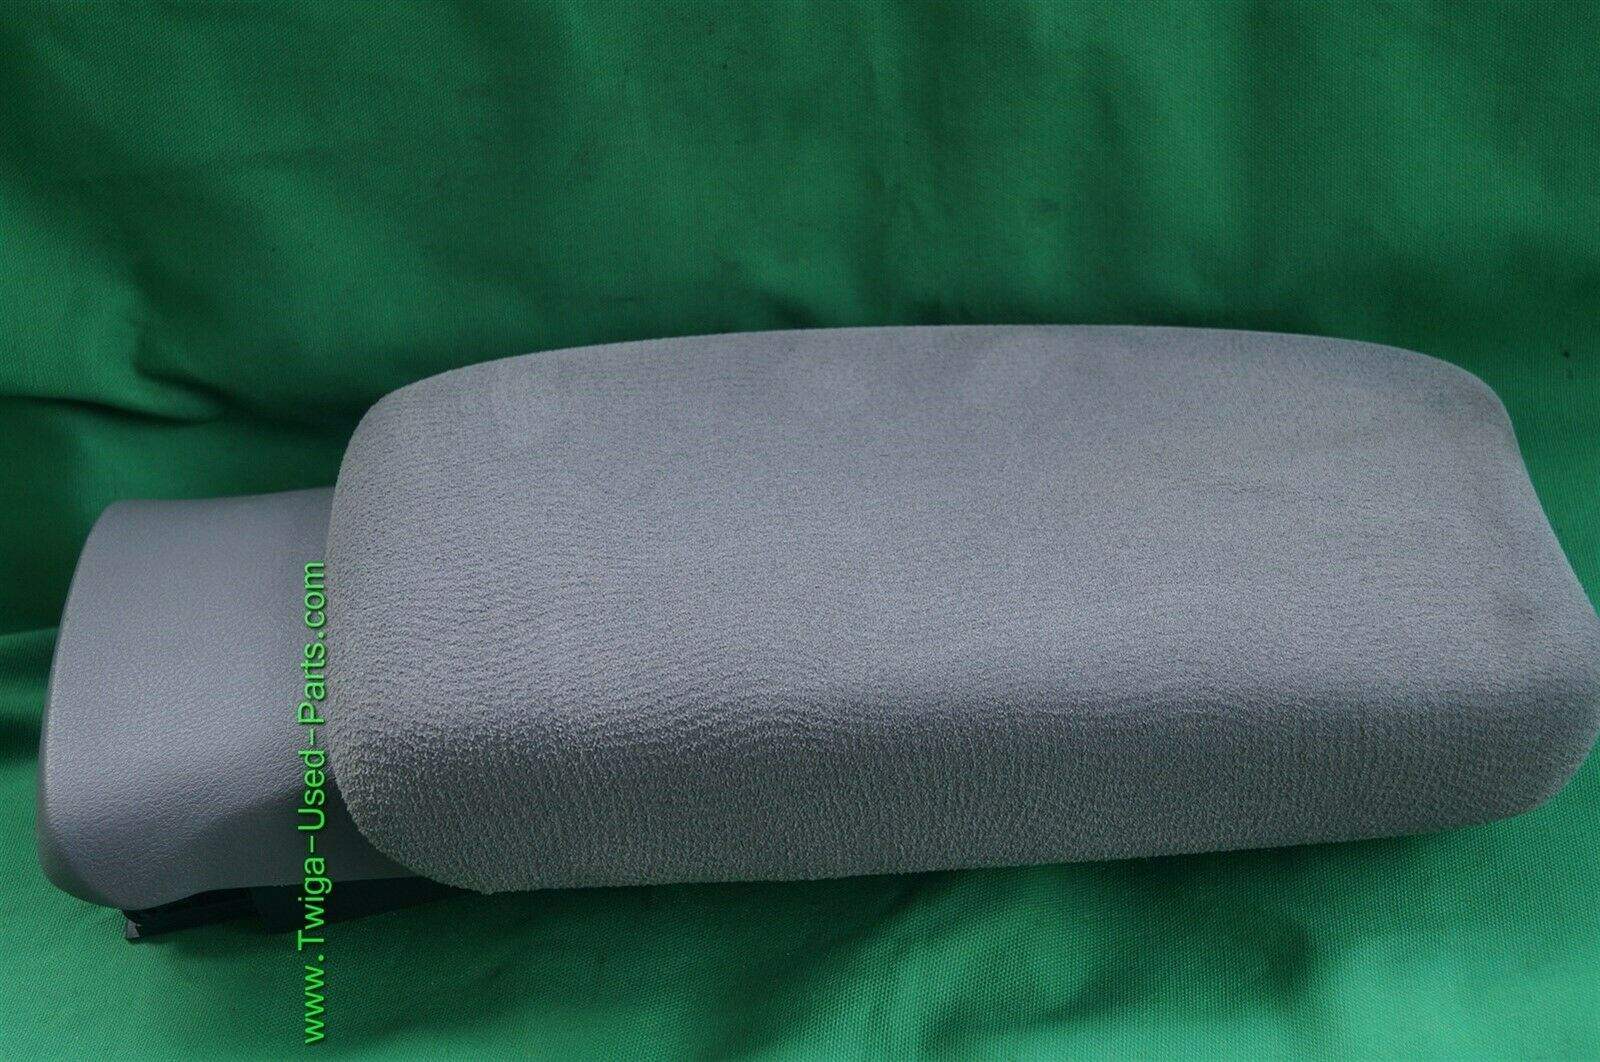 06-11 Honda Civic Sliding Armrest Arm Rest Center Console Lid Cover Fabric Gray